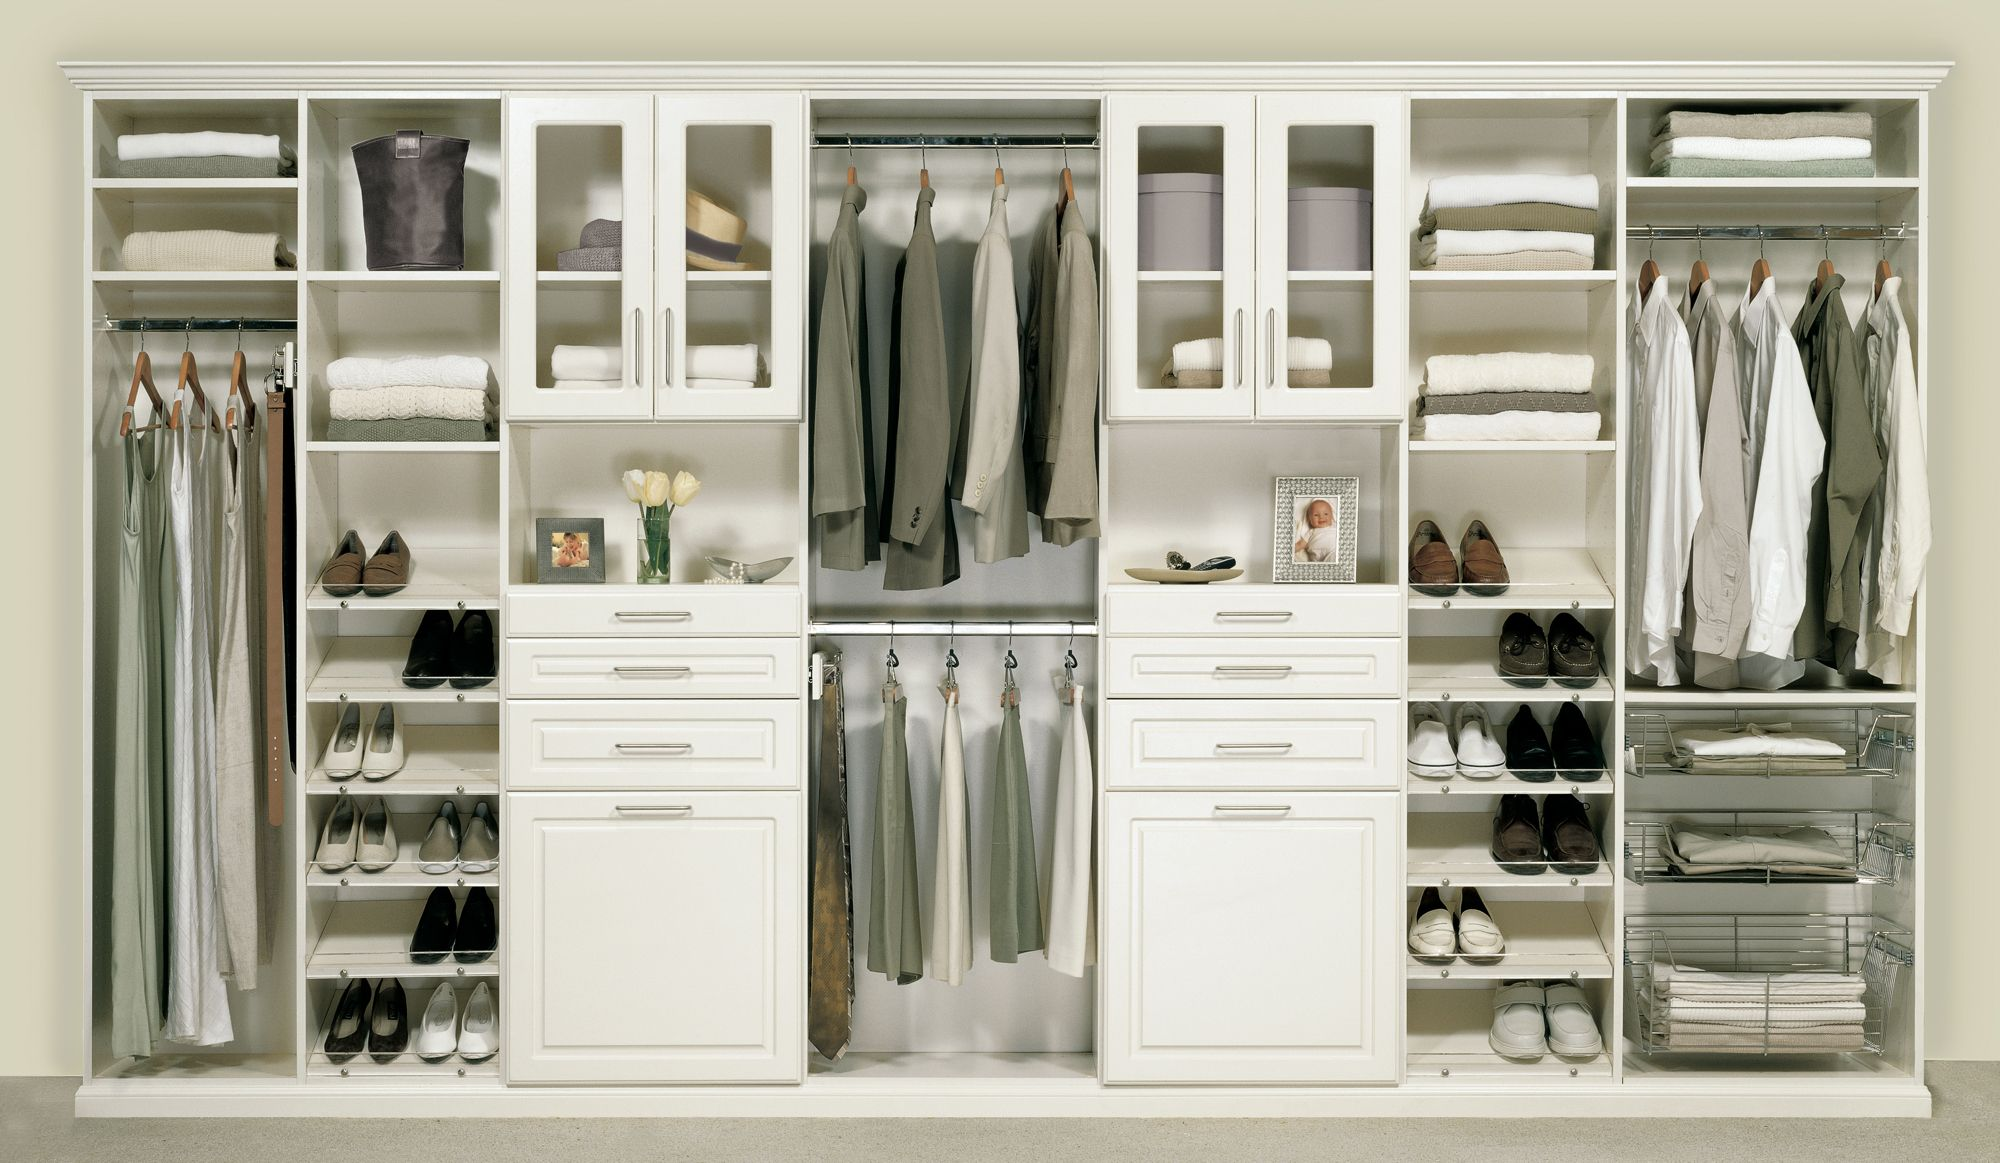 Diy Wood Closet - Home Design Ideas and Pictures